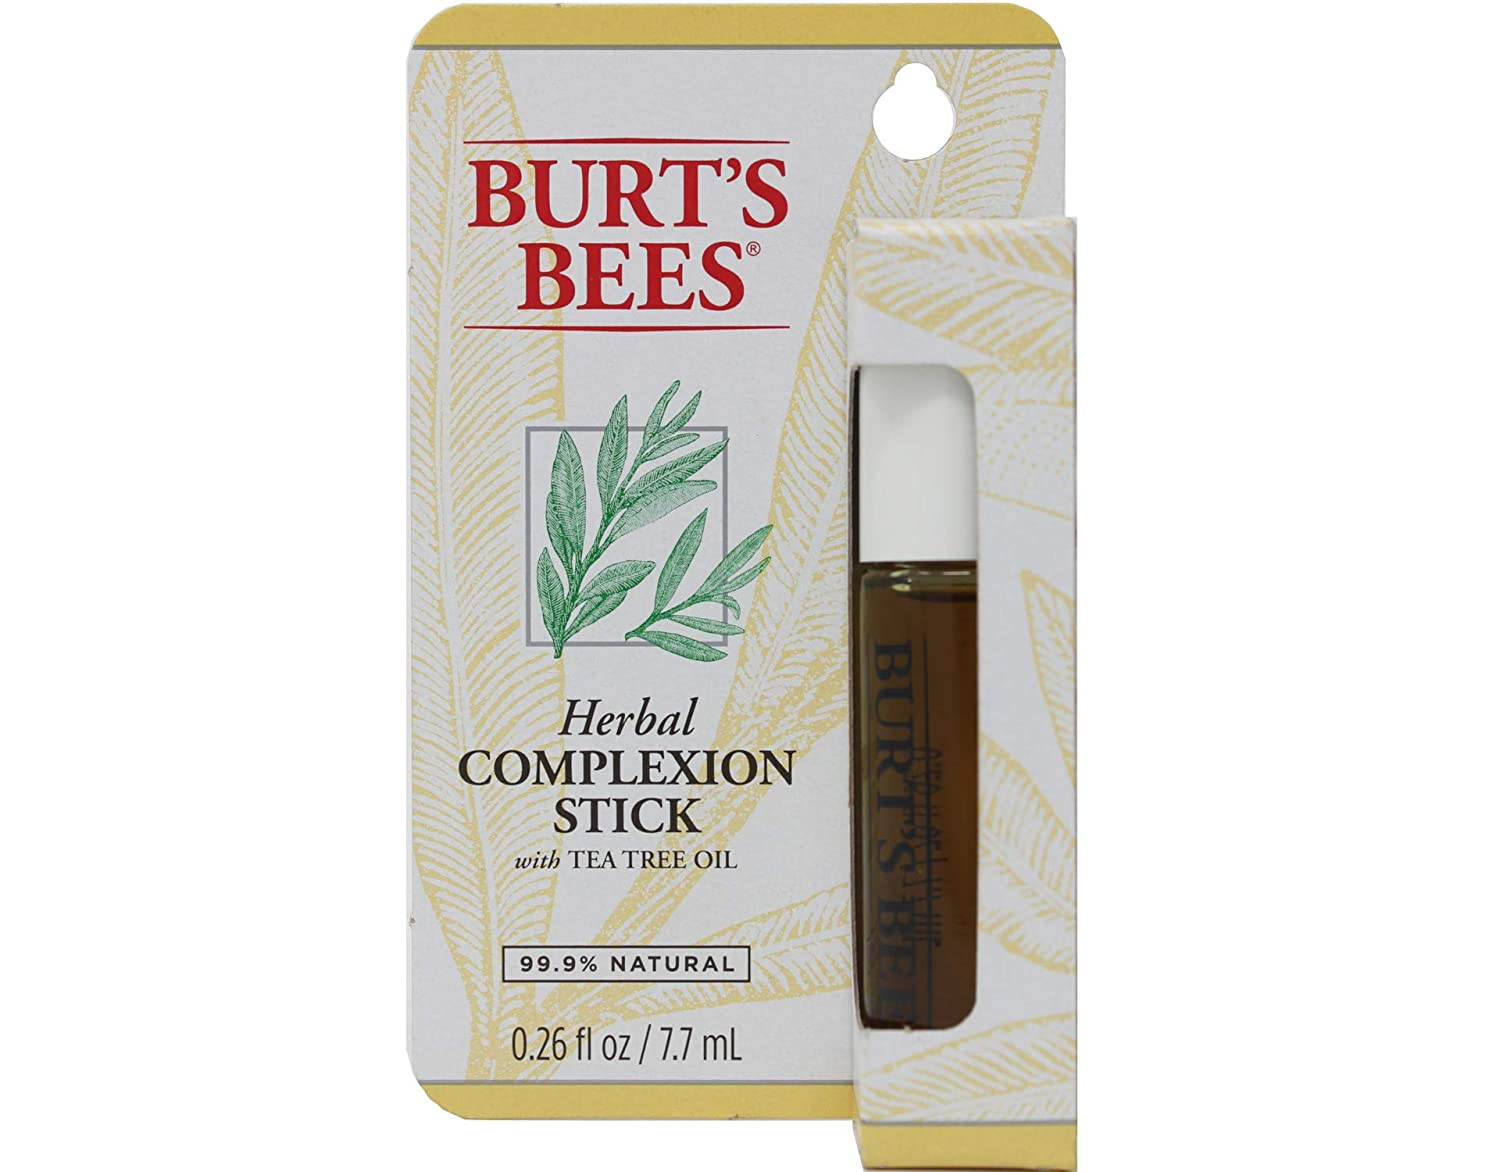 Burt s Bees Herbal Complexion Stick 0.26 Ounces, Pack of 1